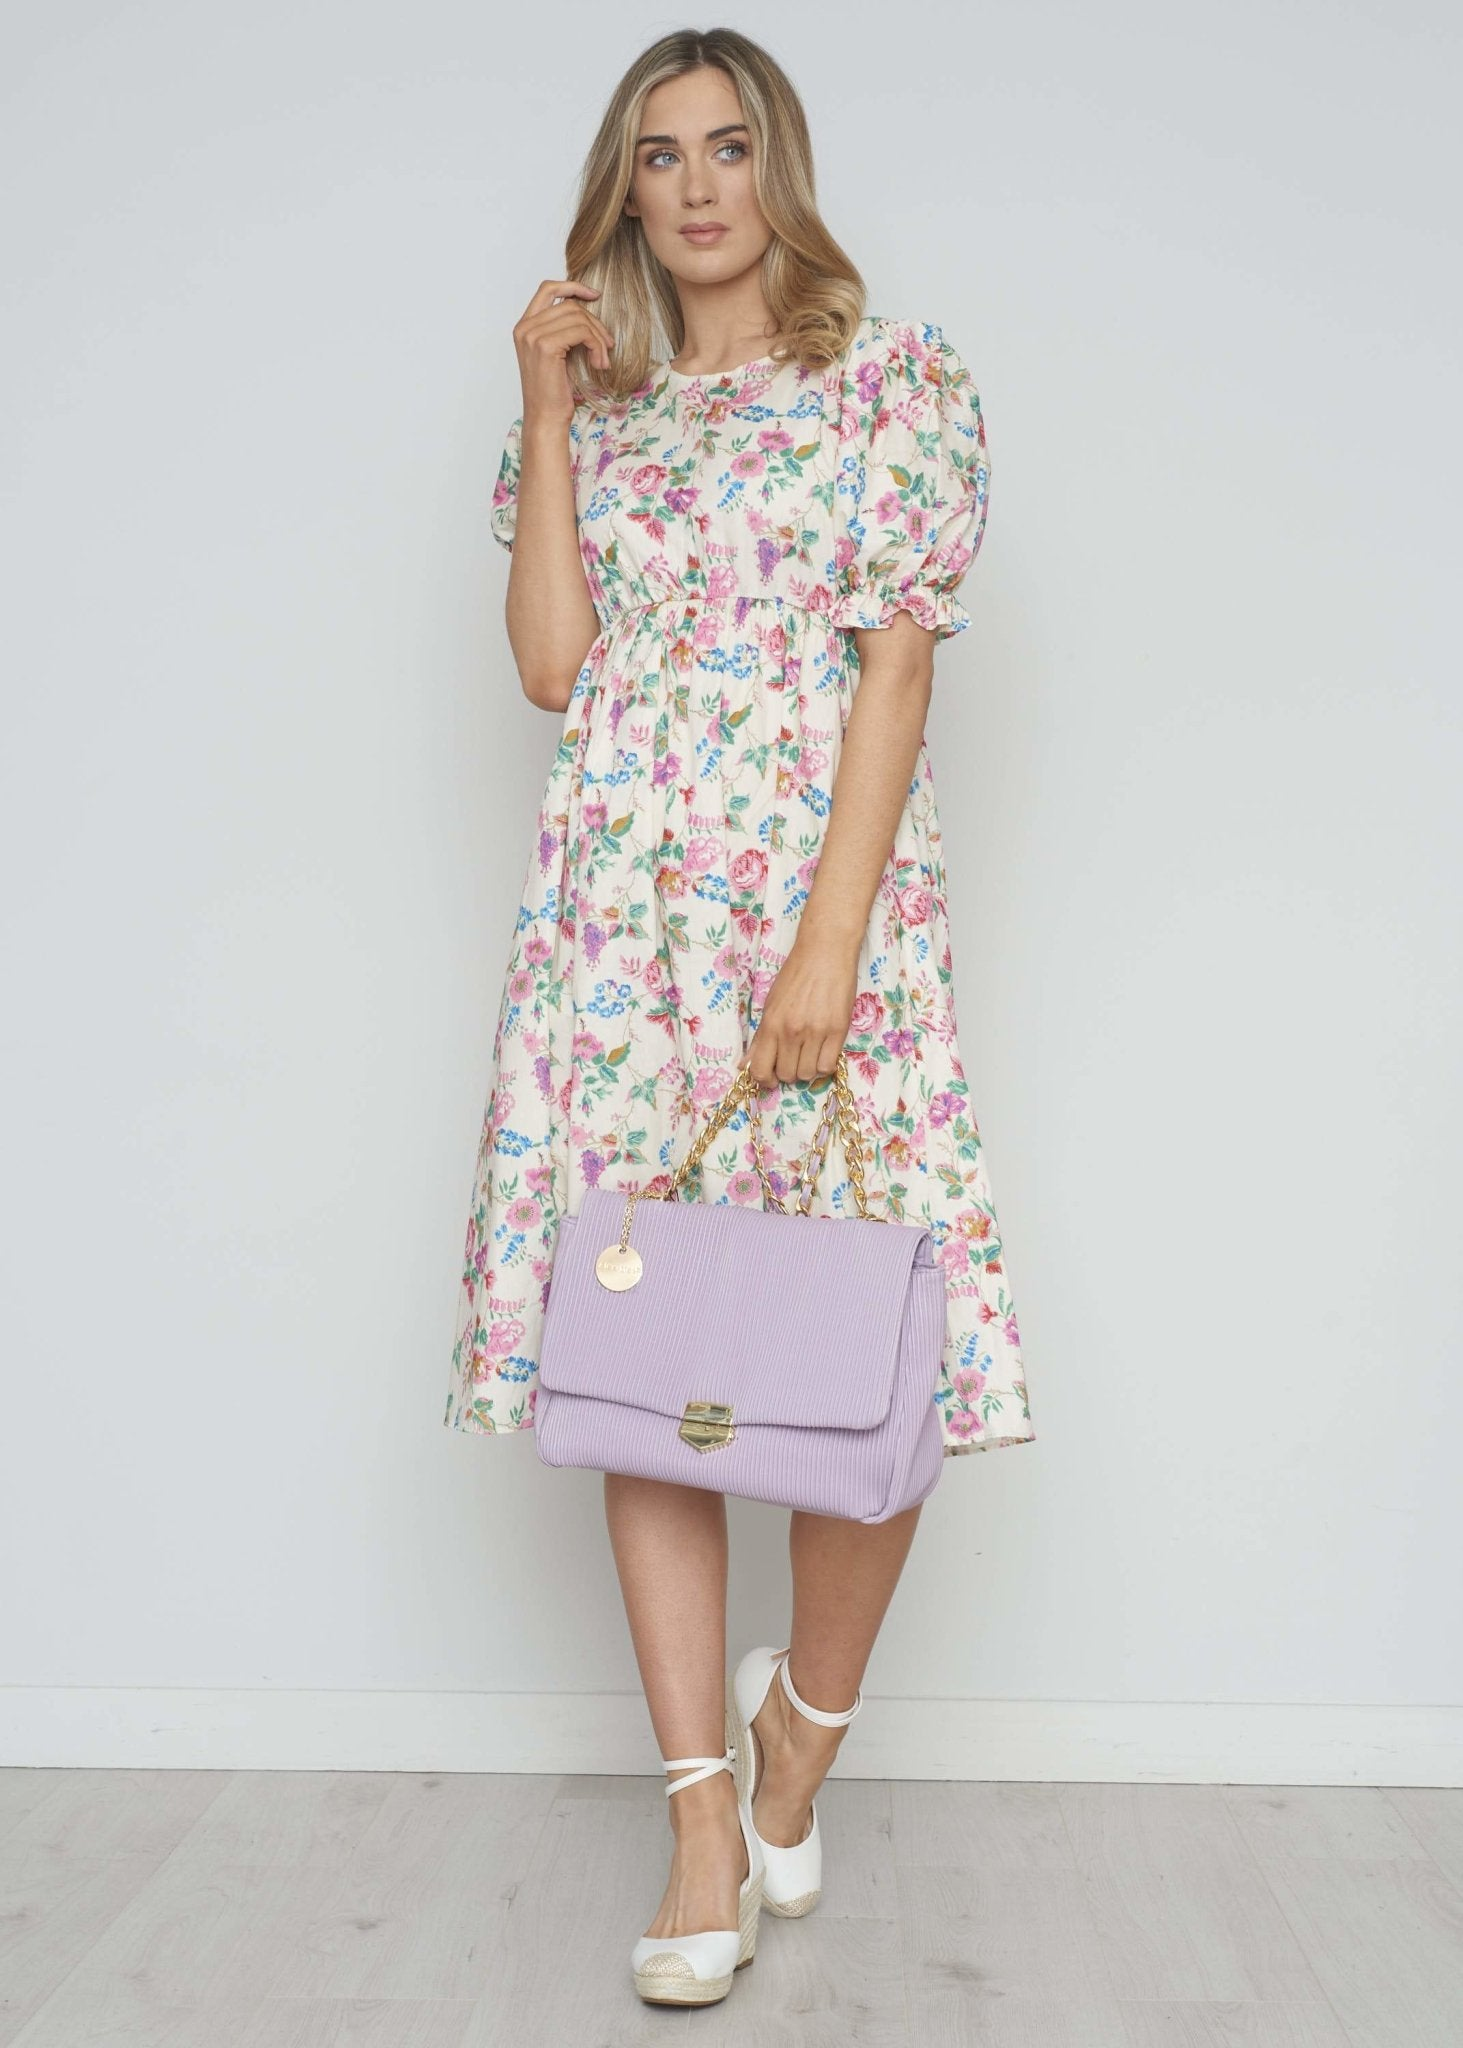 Lucia Floral Dress In Pink Mix - The Walk in Wardrobe